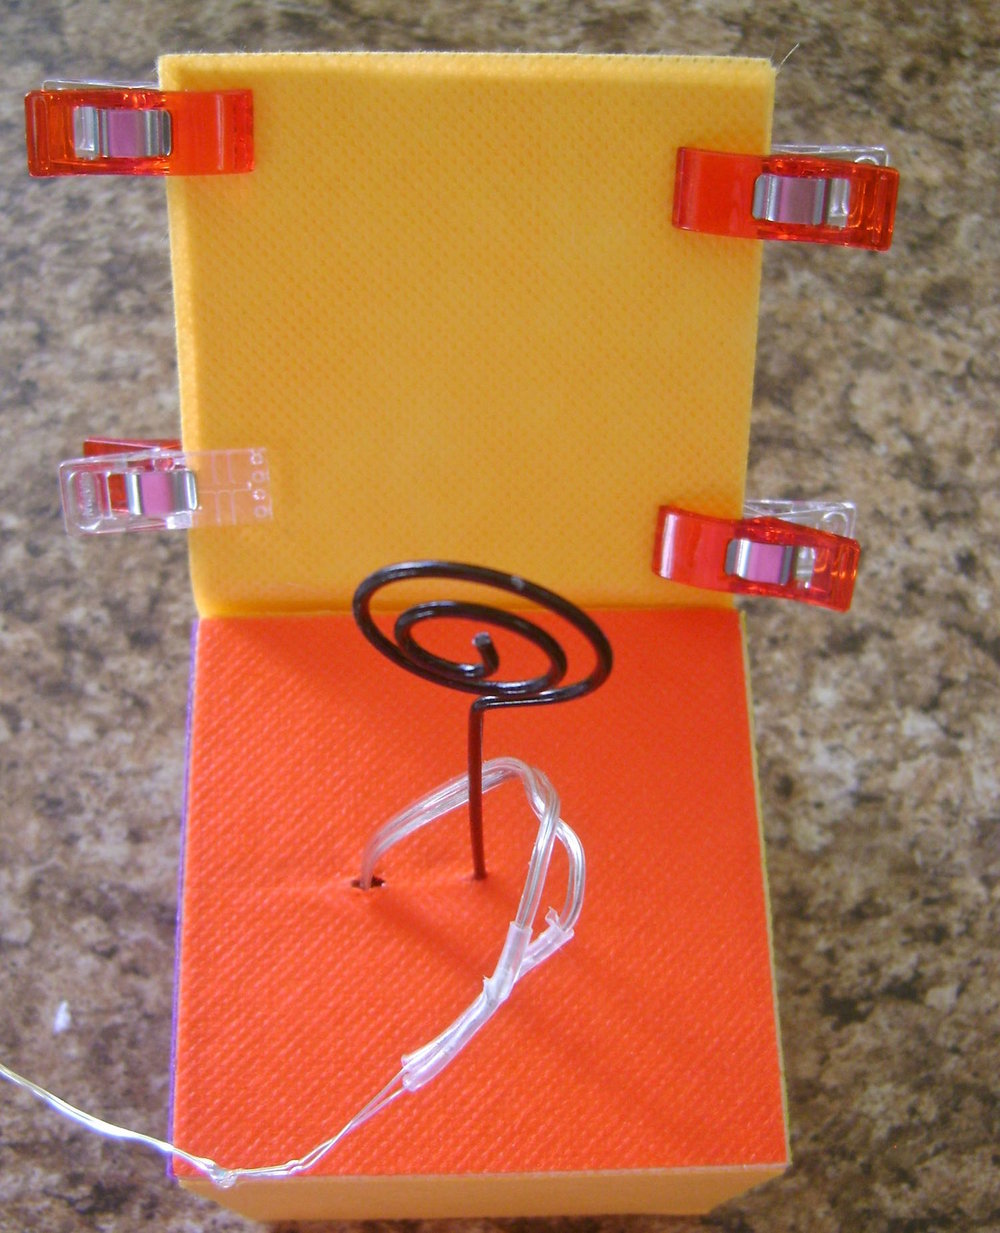 "step 7 - Create the back flap by cutting two fabric and two card stock pieces to measure 3"" x 4.25"".  Use the glue stick to sandwich the card stock pieces inside the fabric pieces.  Glue the layers to the back of the cube just above the battery pack.  Use Wonder Clips to hold the layers together until they dry.  Bend the flap back at an angle.  Hot glue silver stars in each top corner."